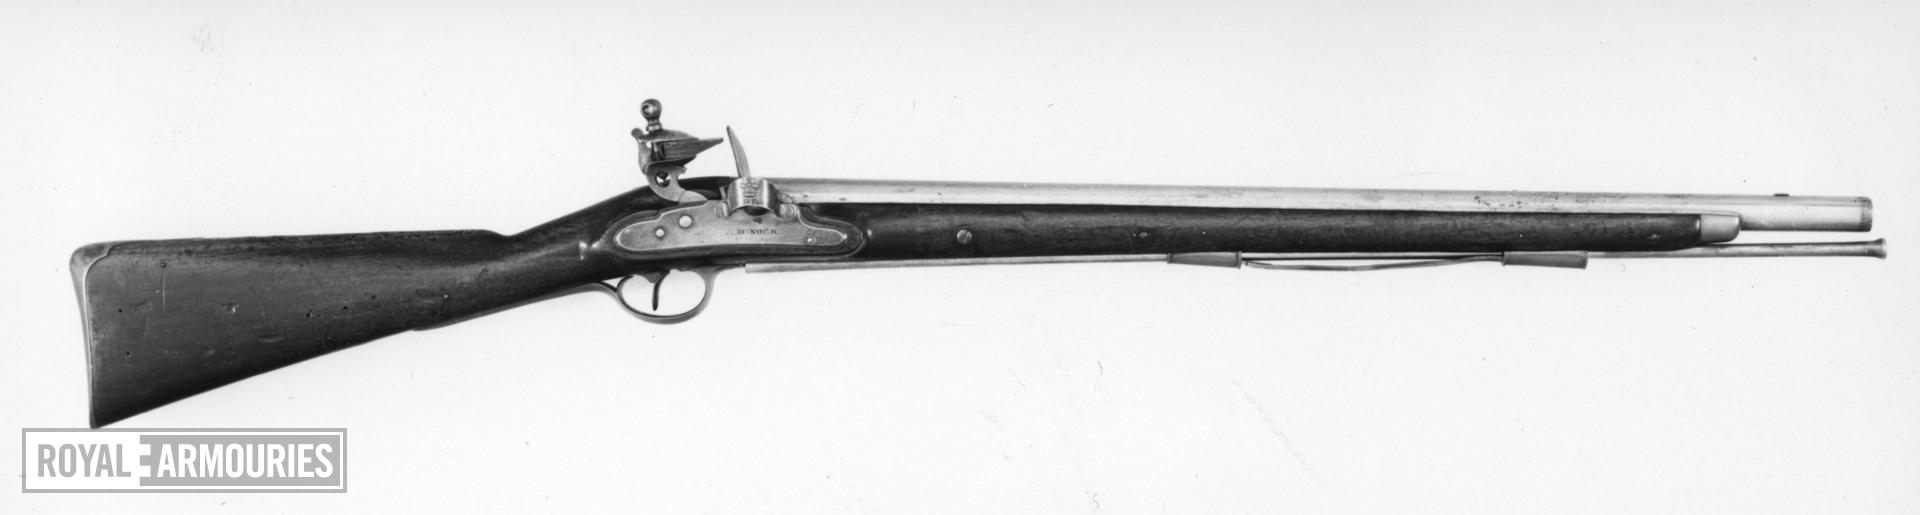 Flintlock muzzle-loading carbine - Harcourt Heavy Dragoon Carbine Pattern 1793